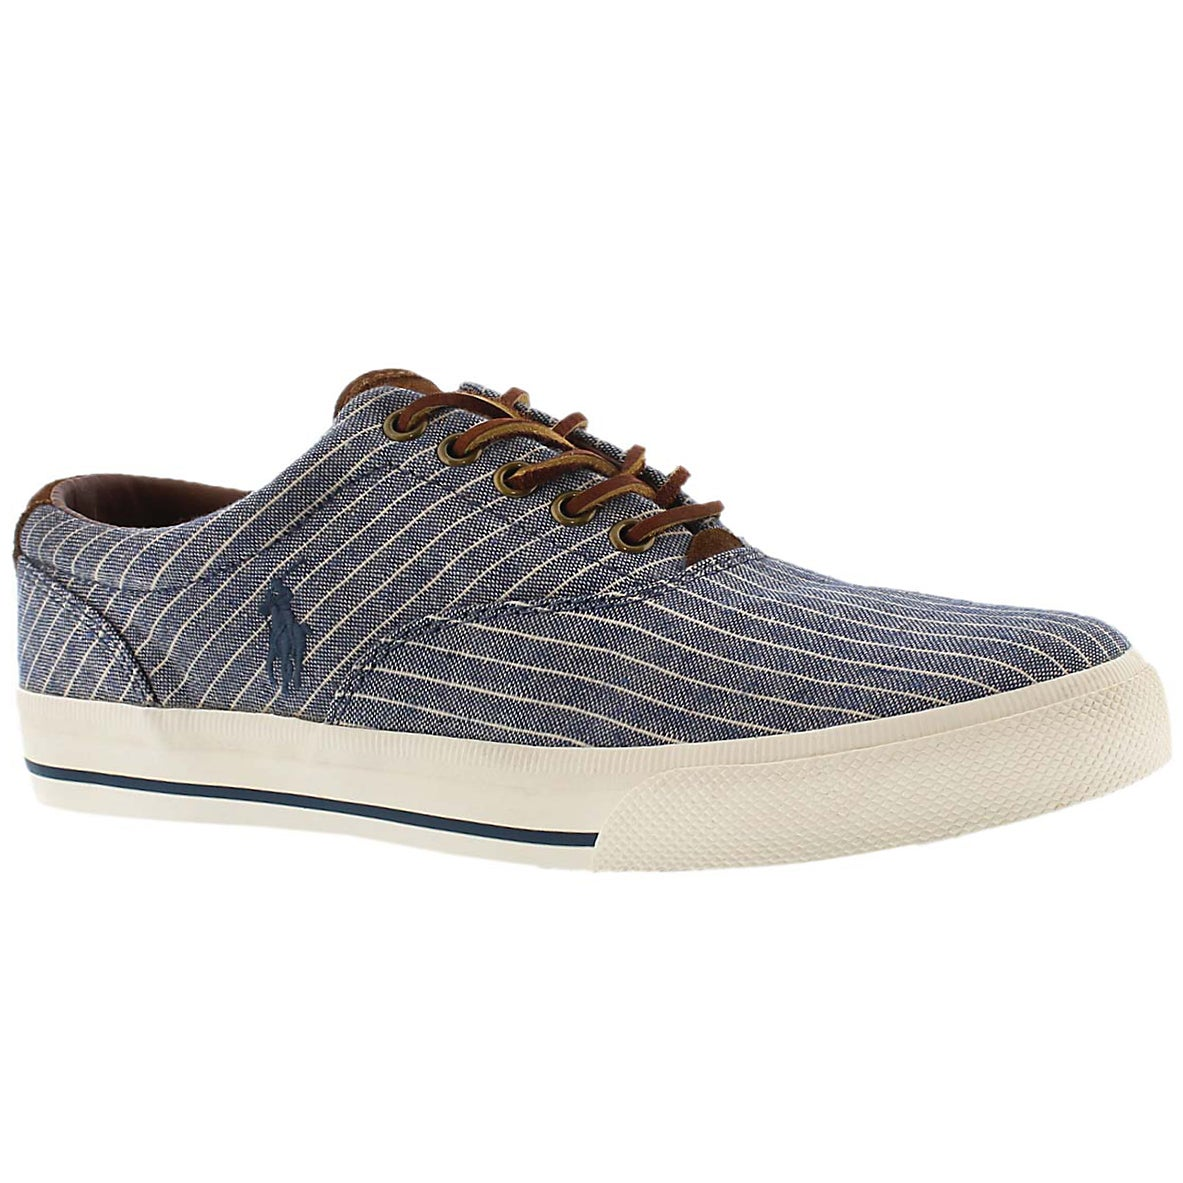 Mns Vaughn navy striped canvas sneaker